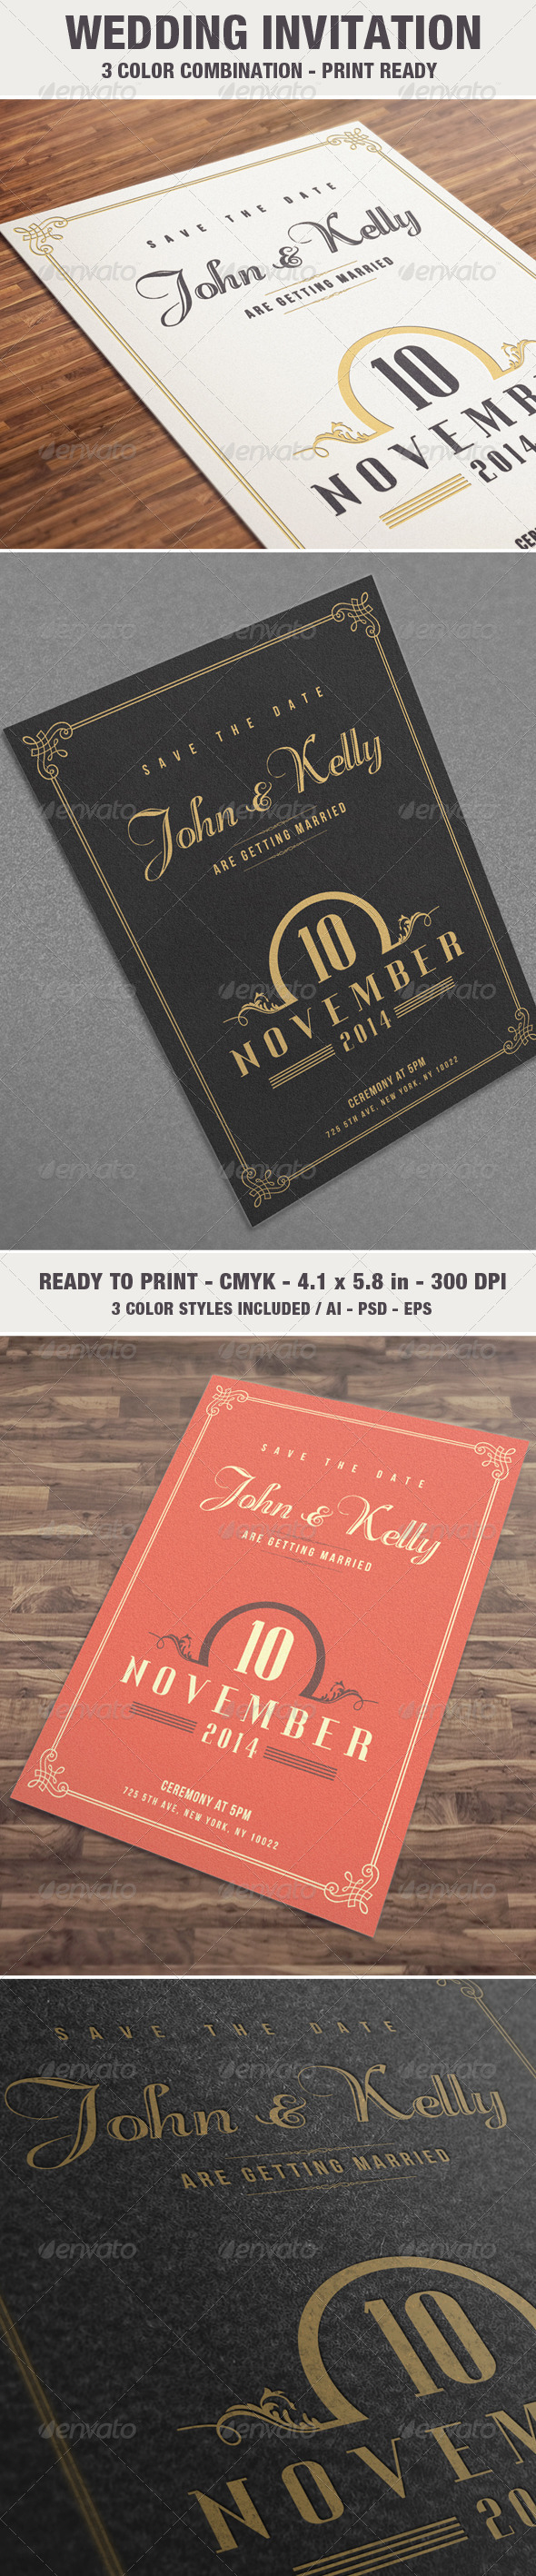 GraphicRiver Elegant & Vintage Wedding Invitation Card V2 6879989